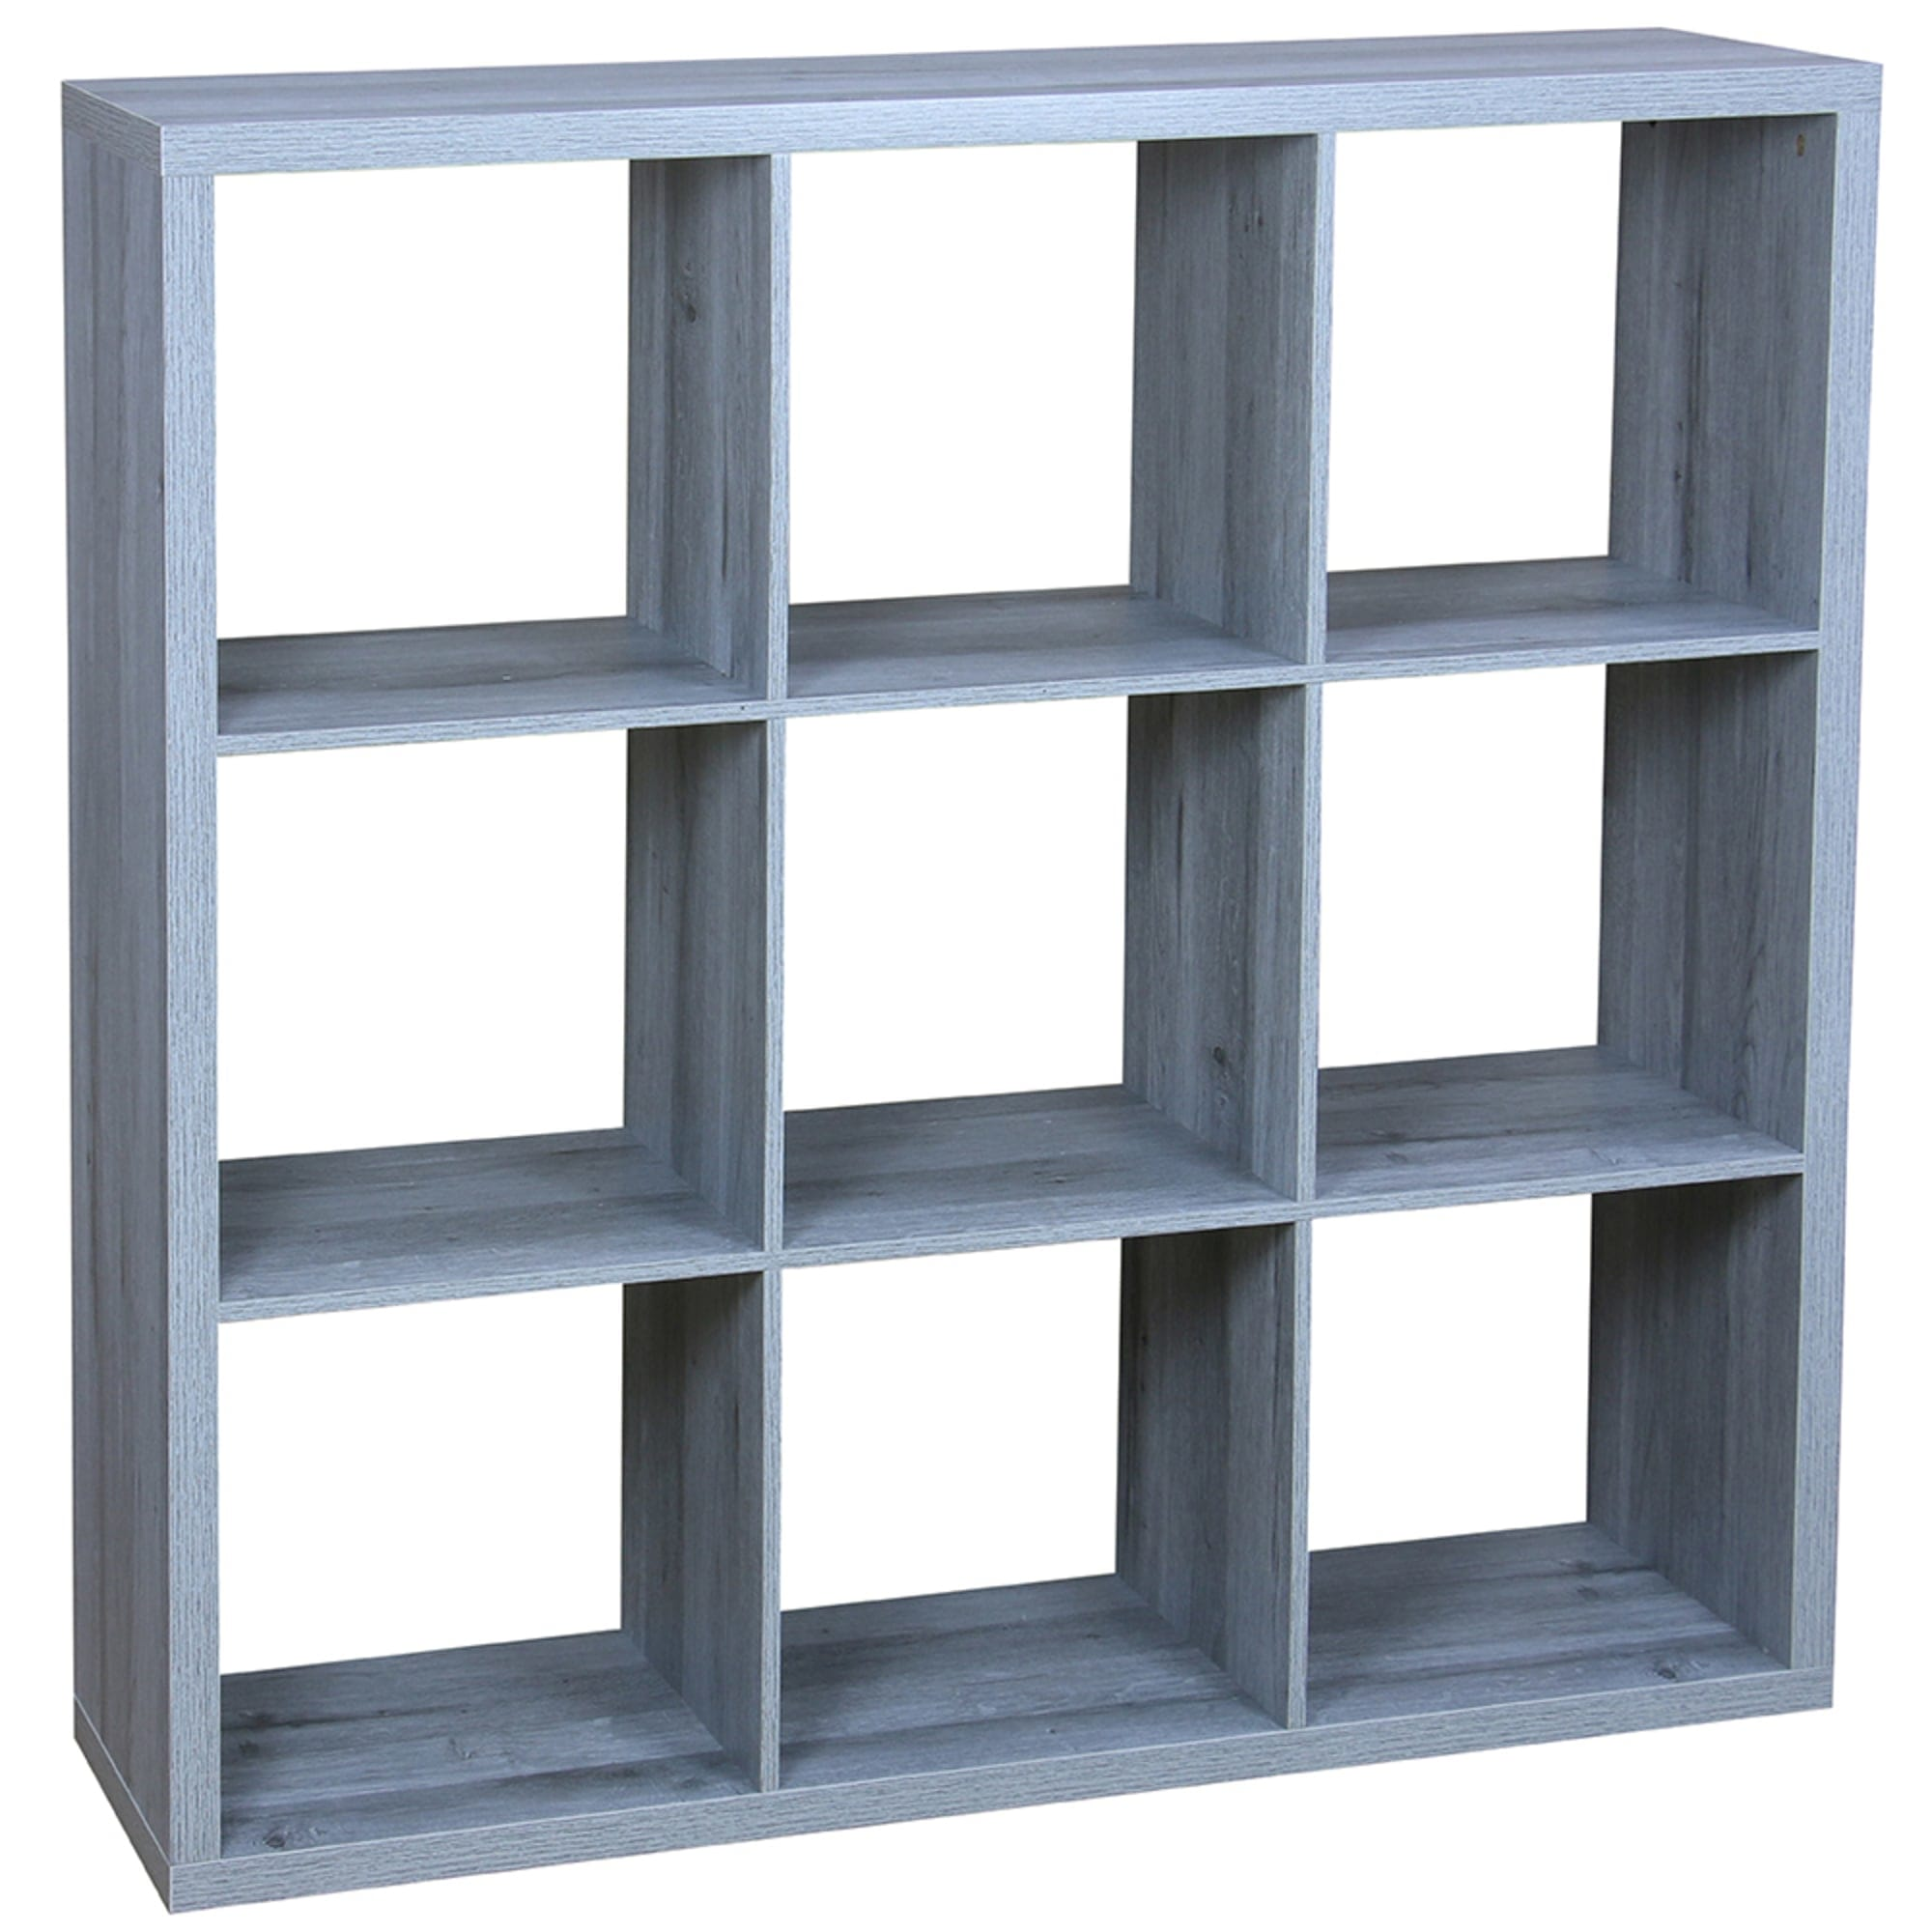 9 Open Cube Organizing Wood Storage Shelf, Grey